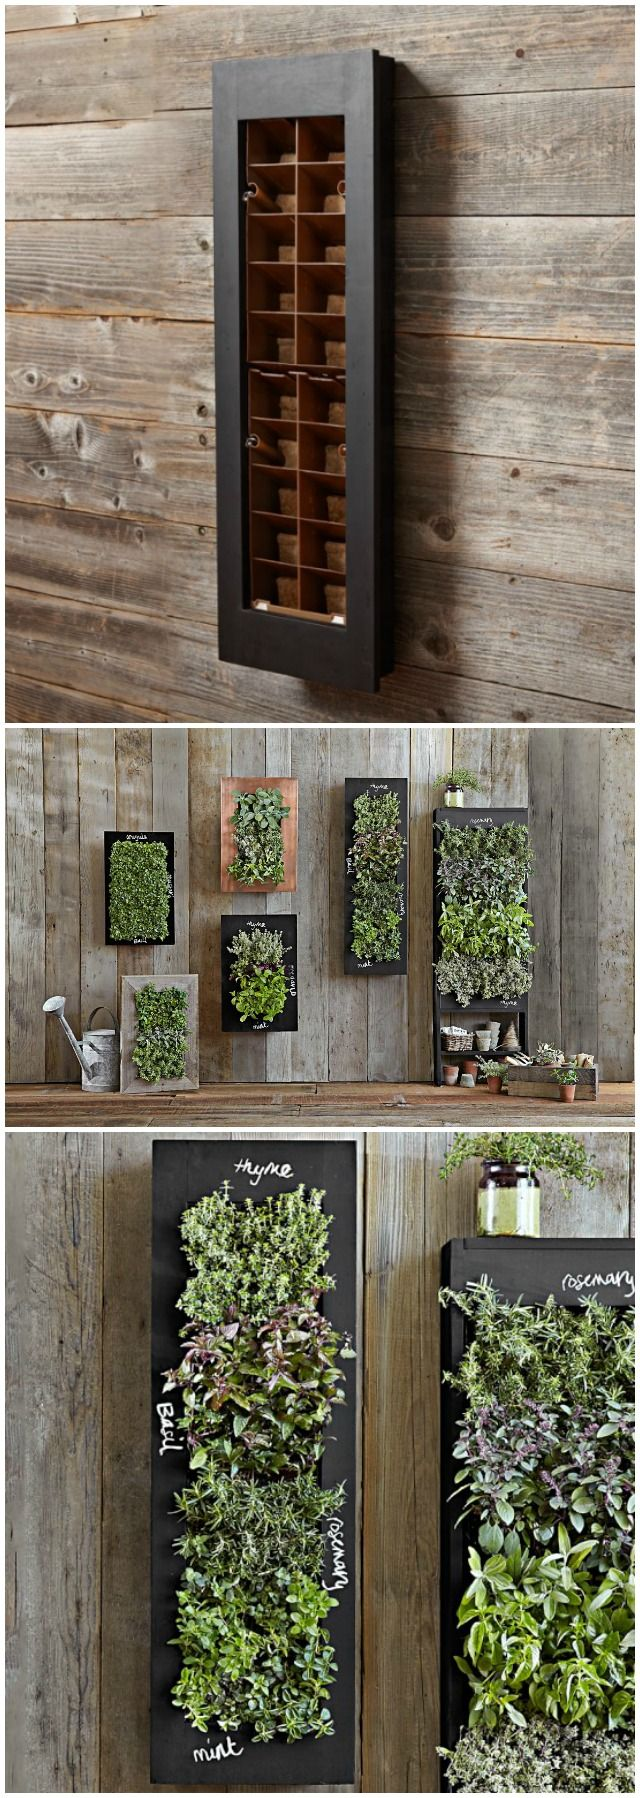 25+ best ideas about Wall planters on Pinterest | Diy ... Indoor Wall Garden Diy